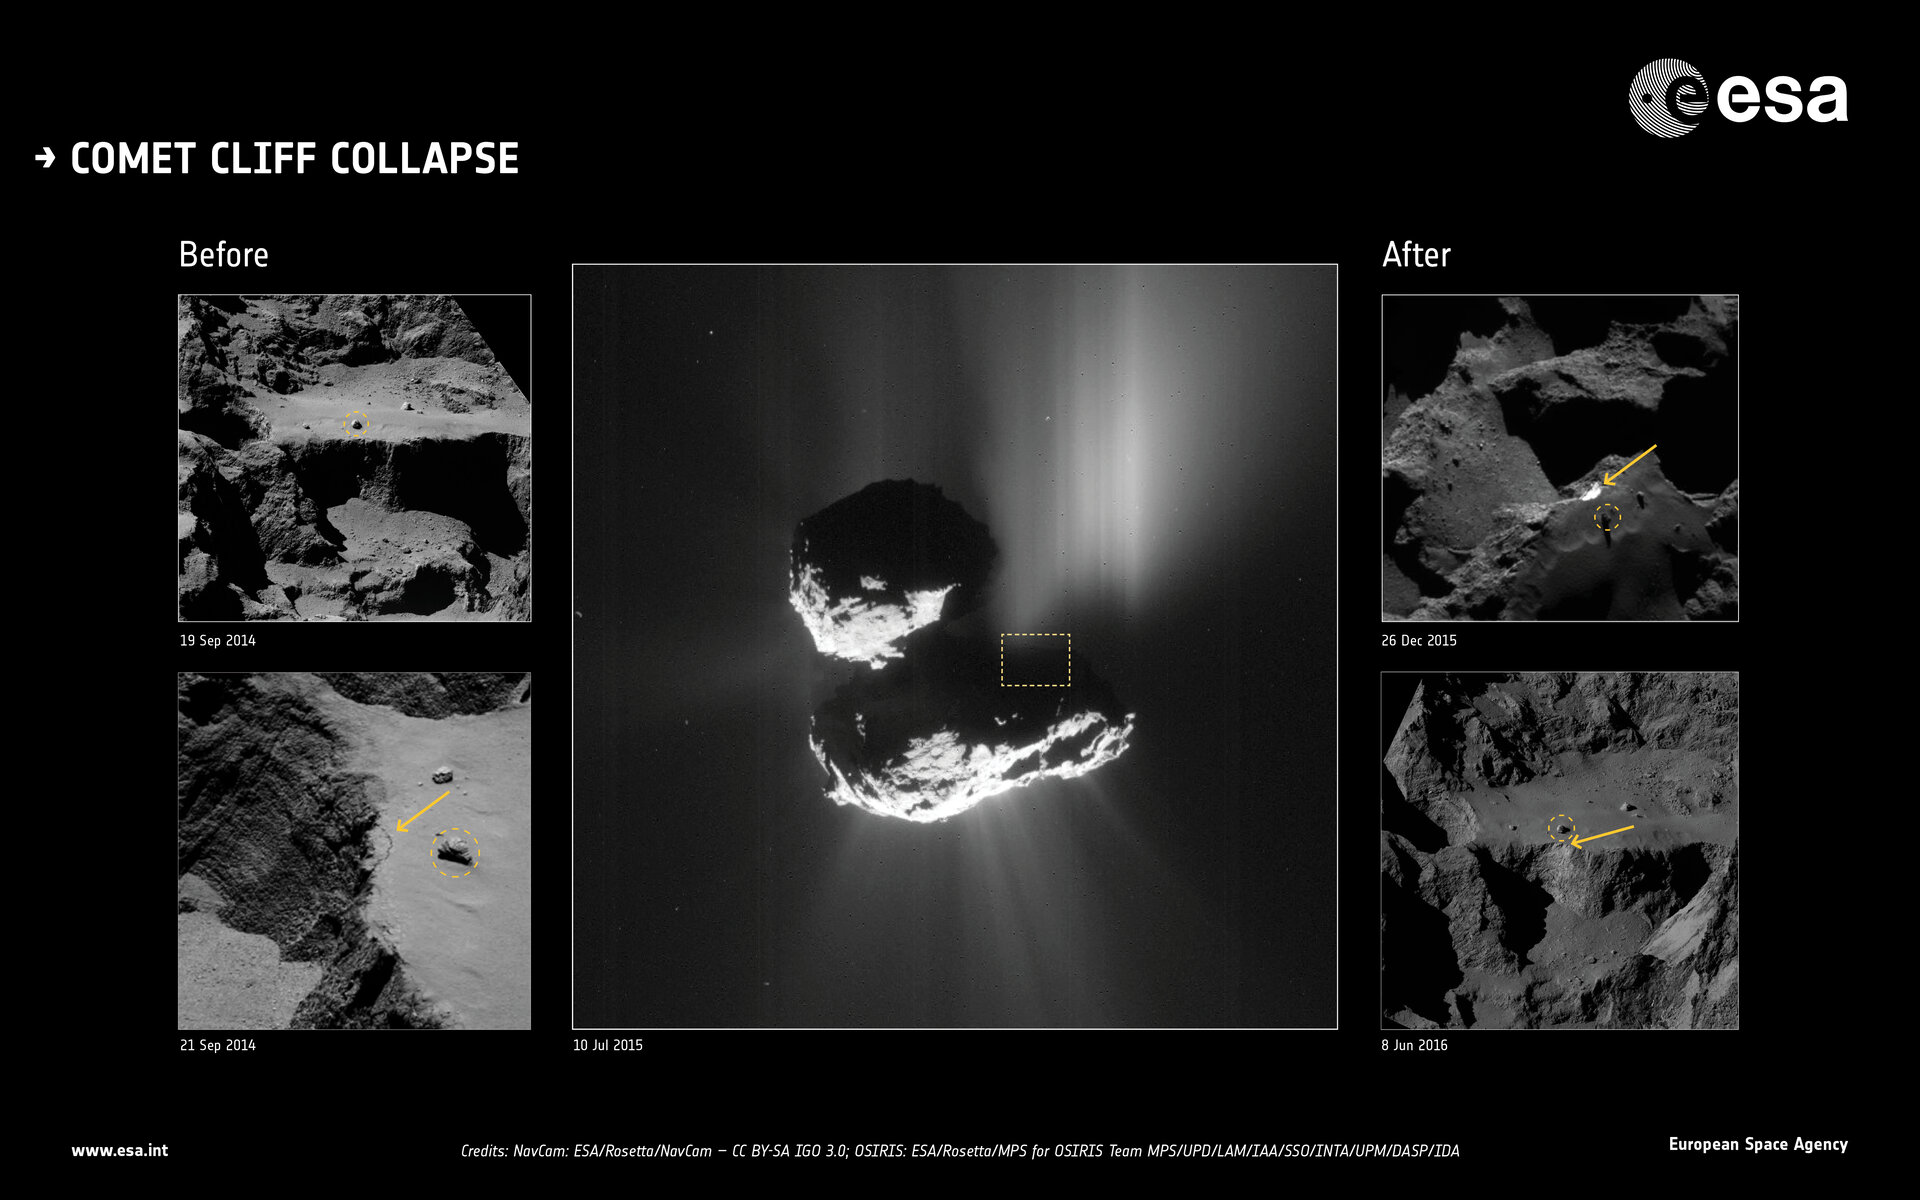 Comet cliff collapse: before and after